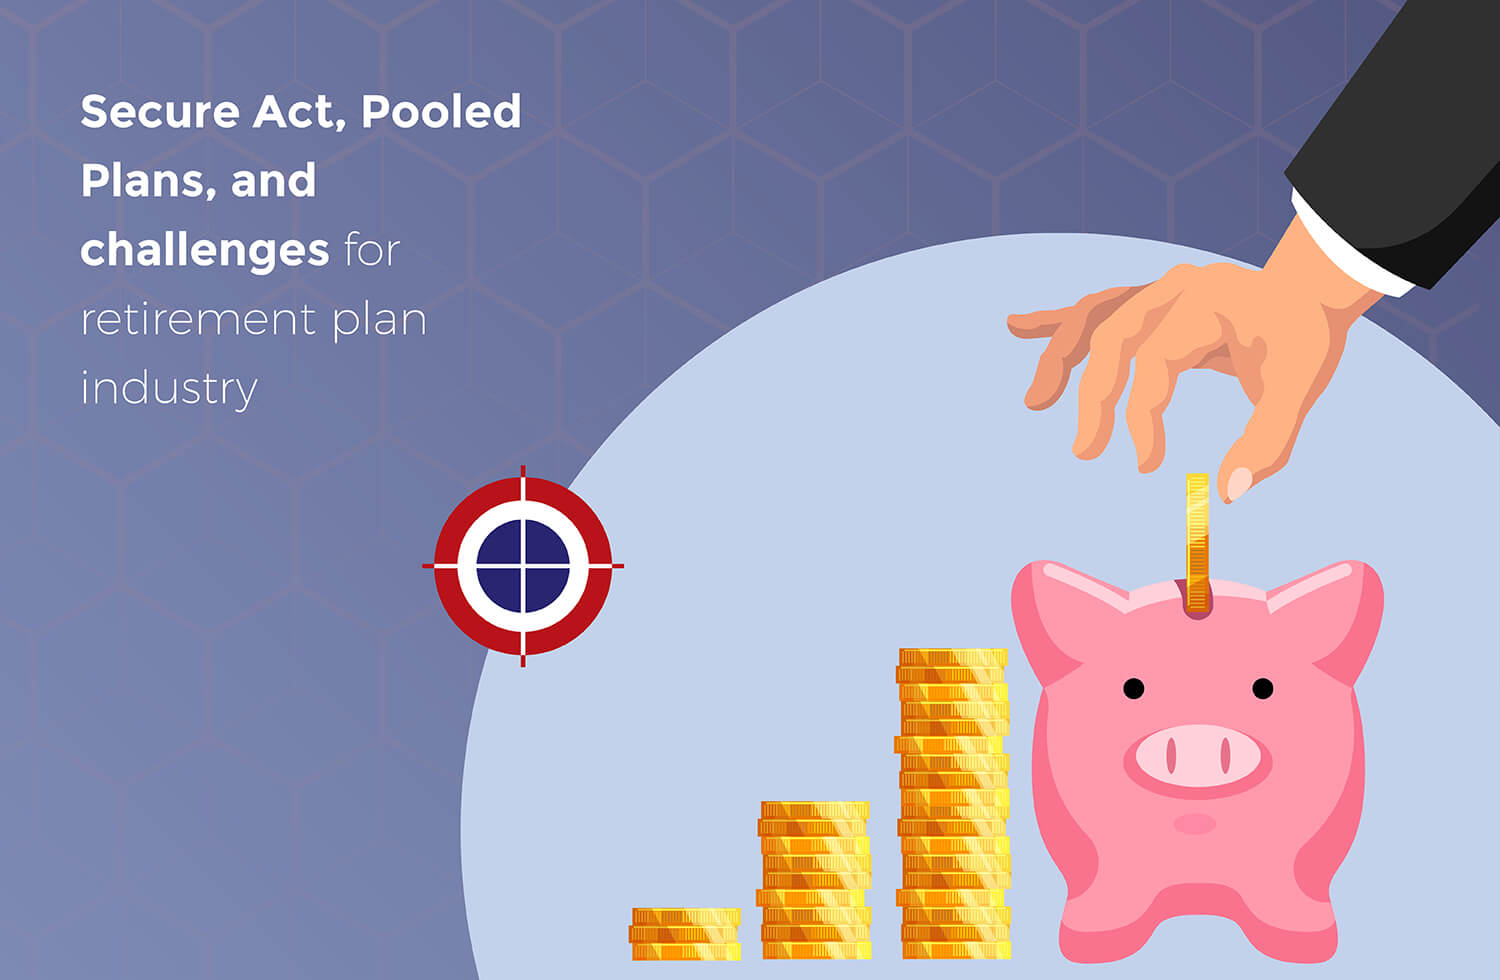 SECURE Act, Pooled Plans & challenges for the retirement plan industry